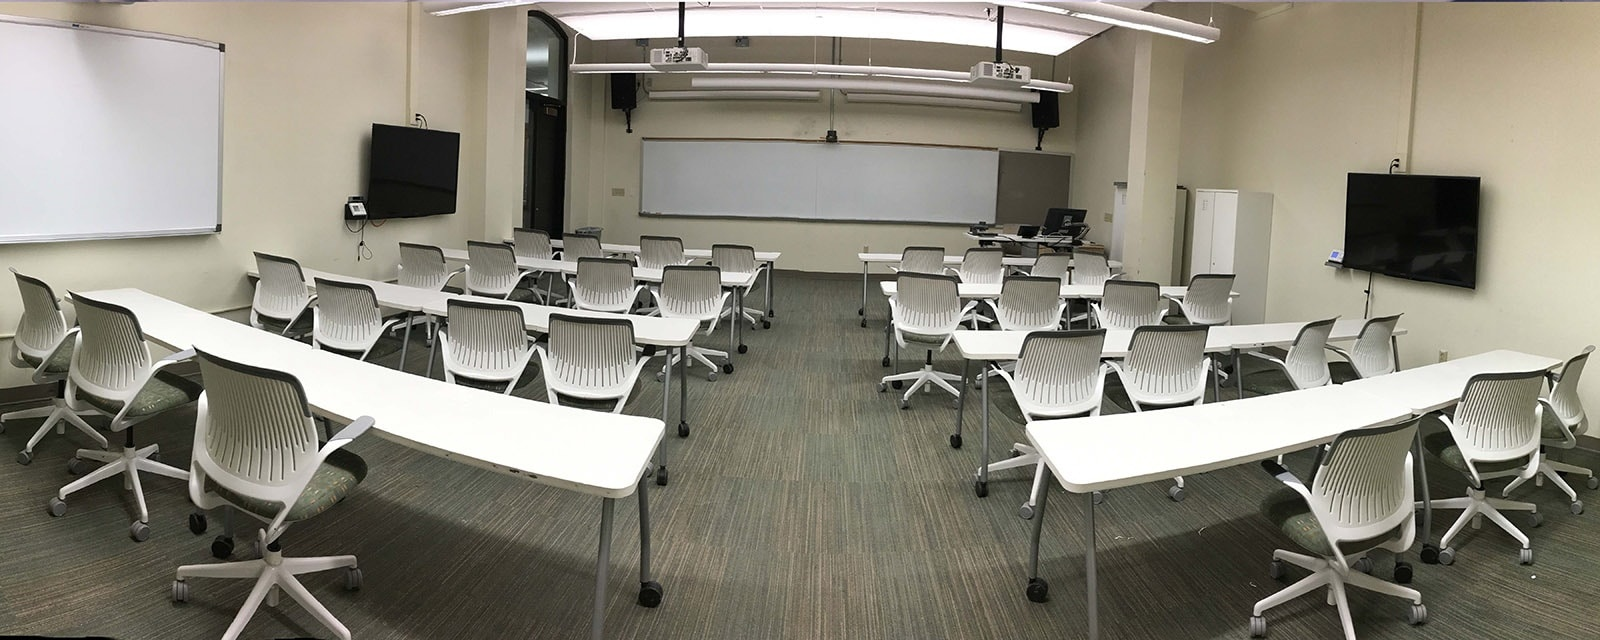 panorama of carnegie 120 from rear to front, chairs moveable with tables, teaching station straight across from entrance